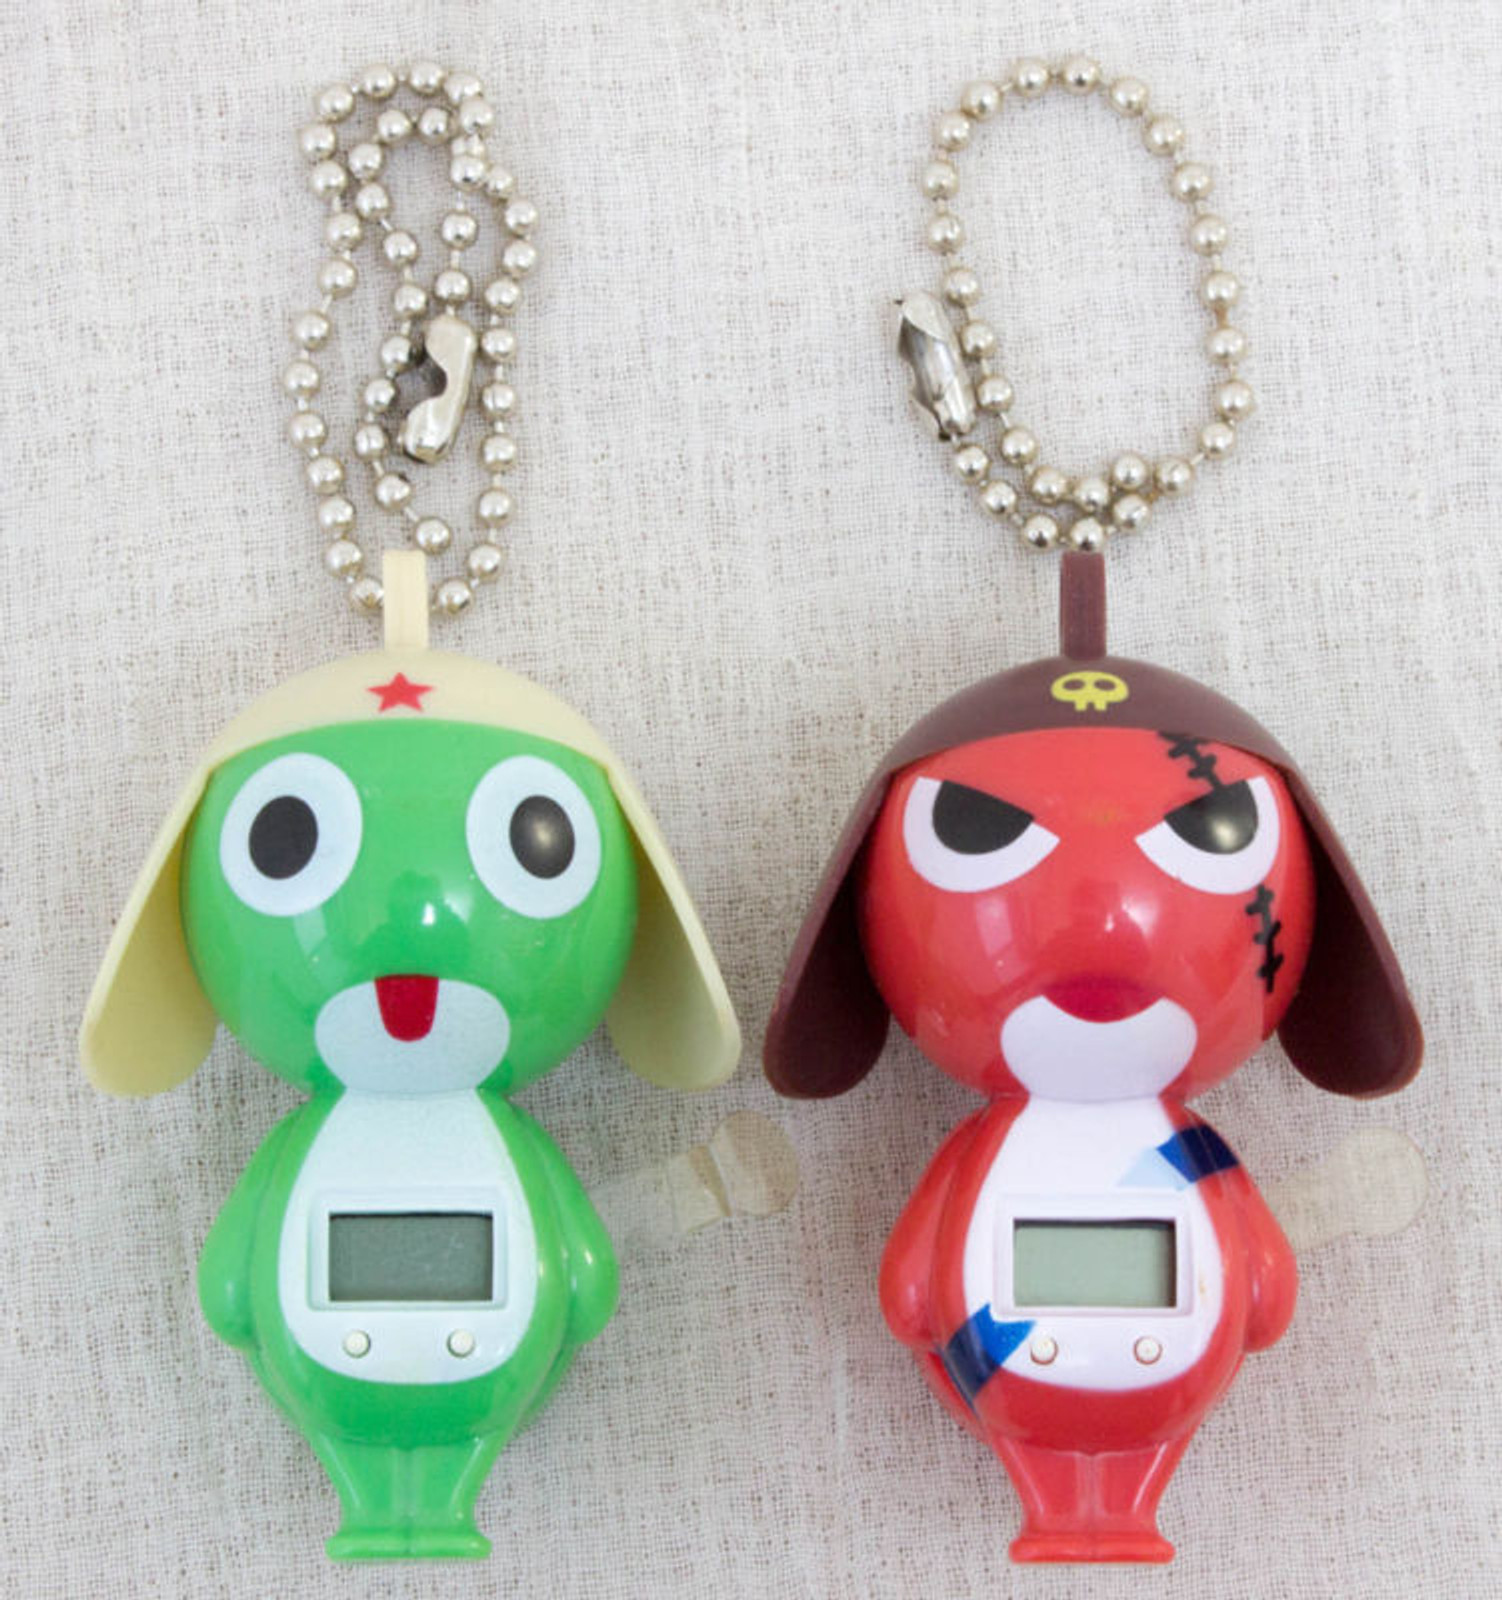 Sgt. Frog Keroro Gunso Keroro & Geroro Figure type Watch w/ Ball chains JAPAN ANIME MANGA